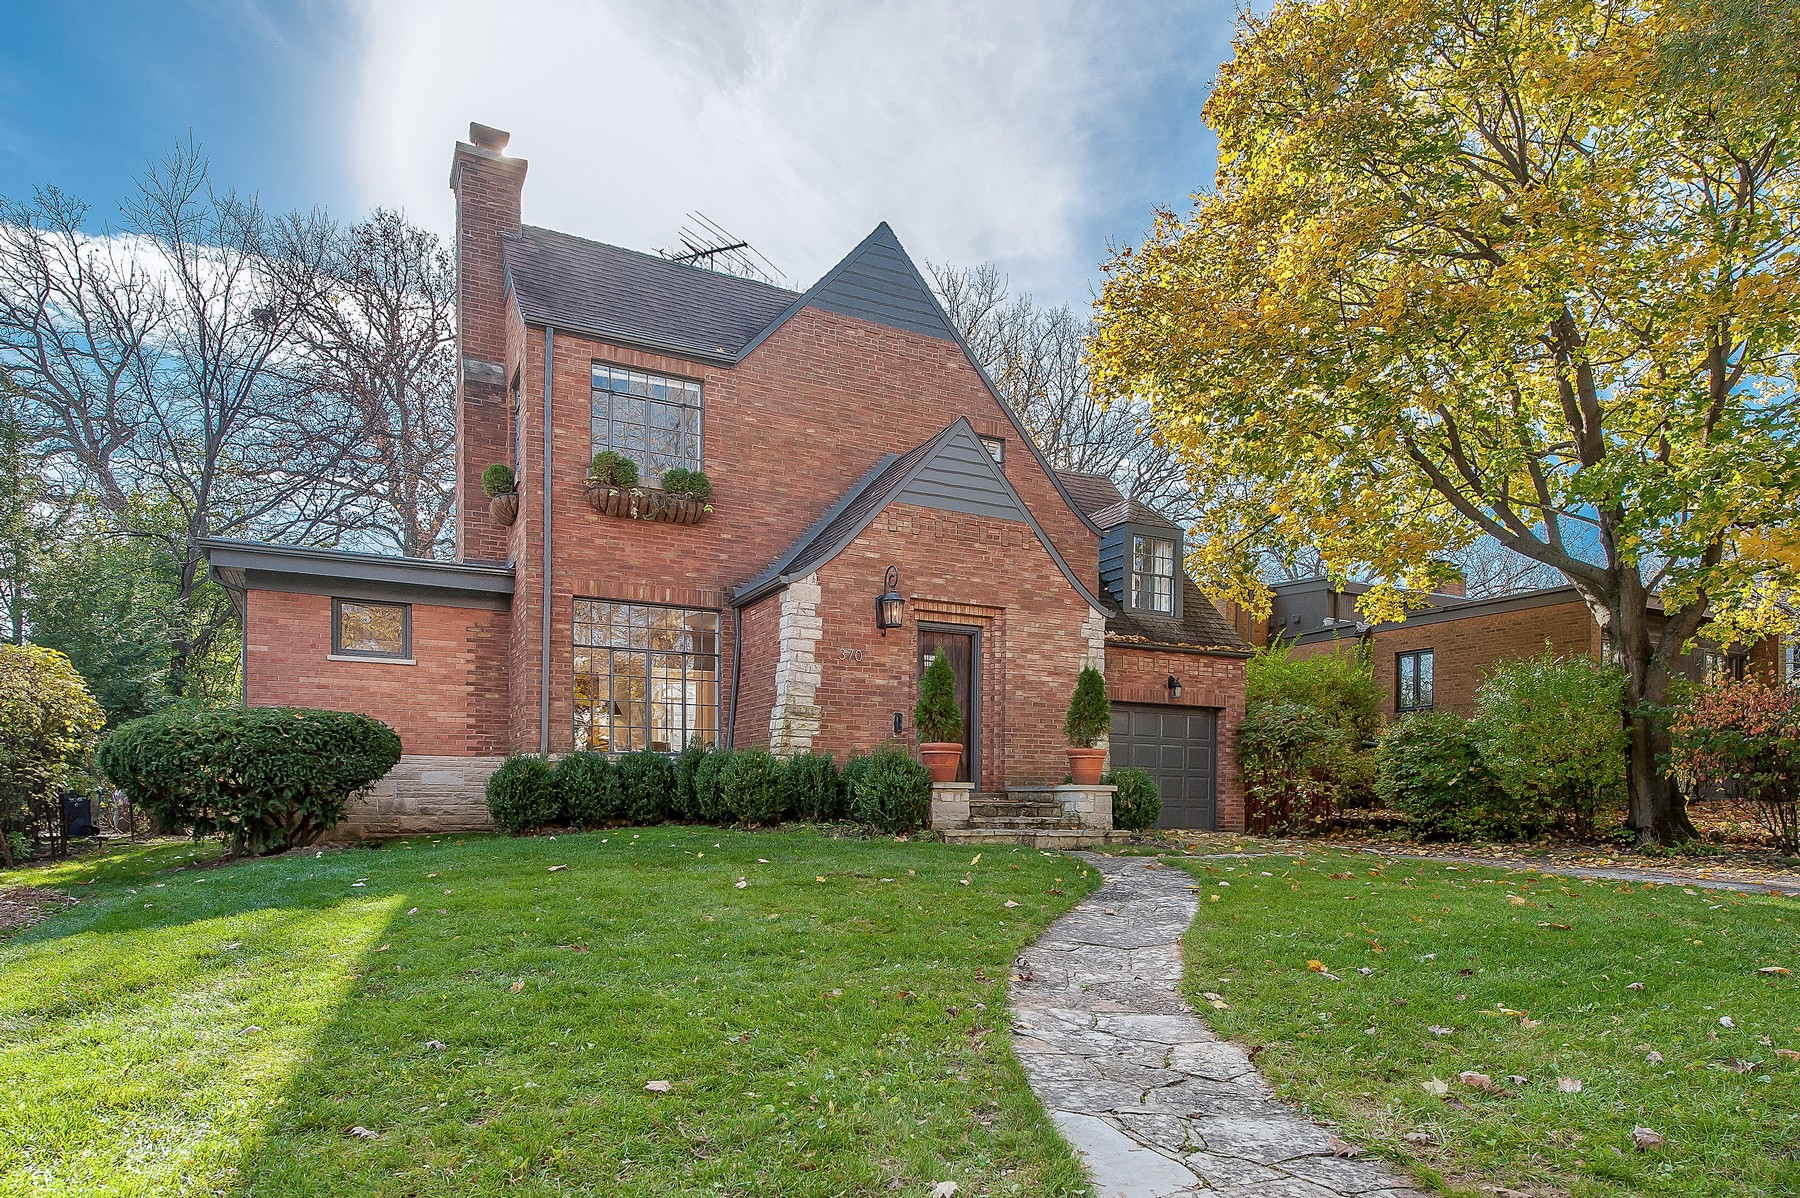 Maison unifamiliale pour l Vente à Incredibly Charming Home 370 Delta Road Highland Park, Illinois, 60035 États-Unis